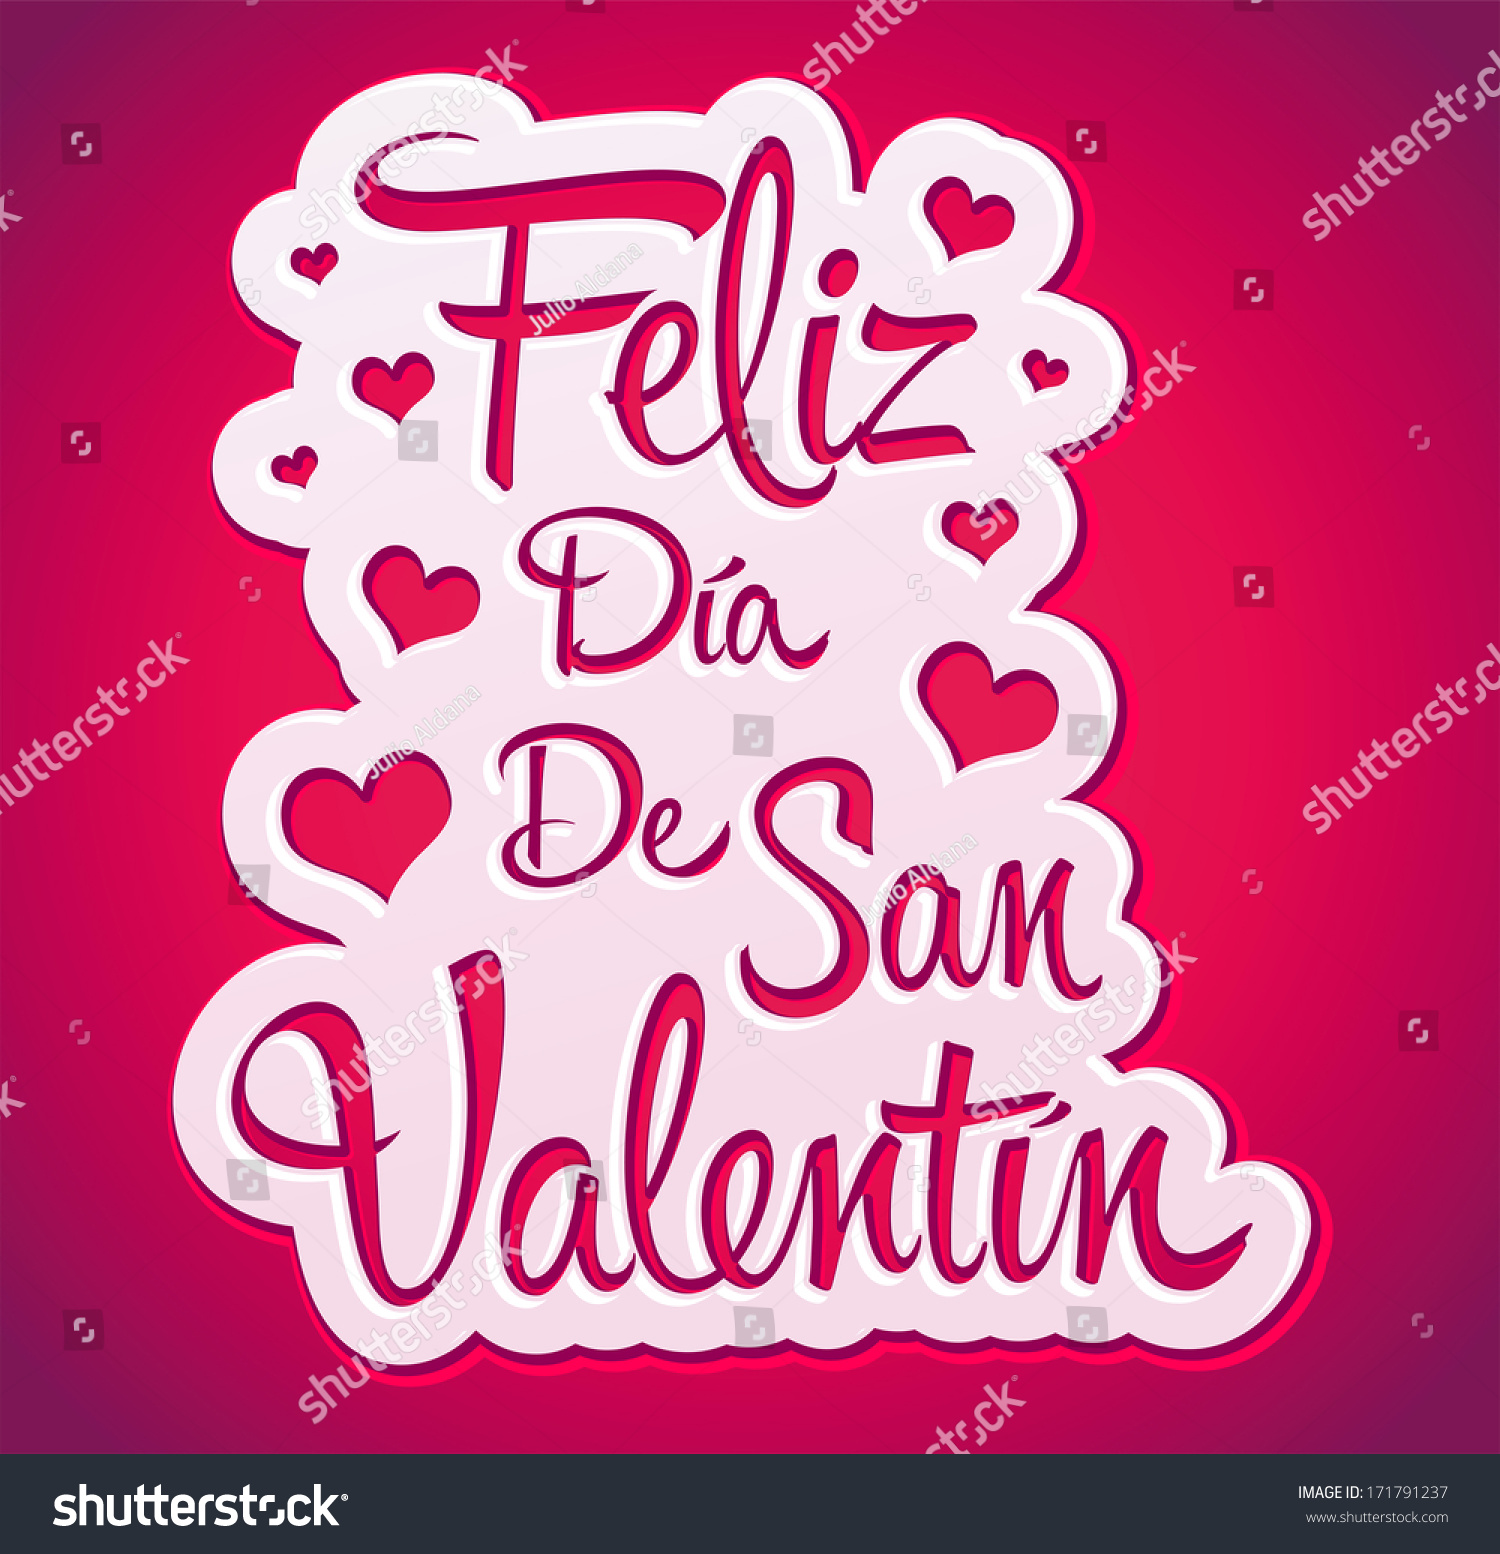 Happy Valentines day spanish text  peeling sticker  vector